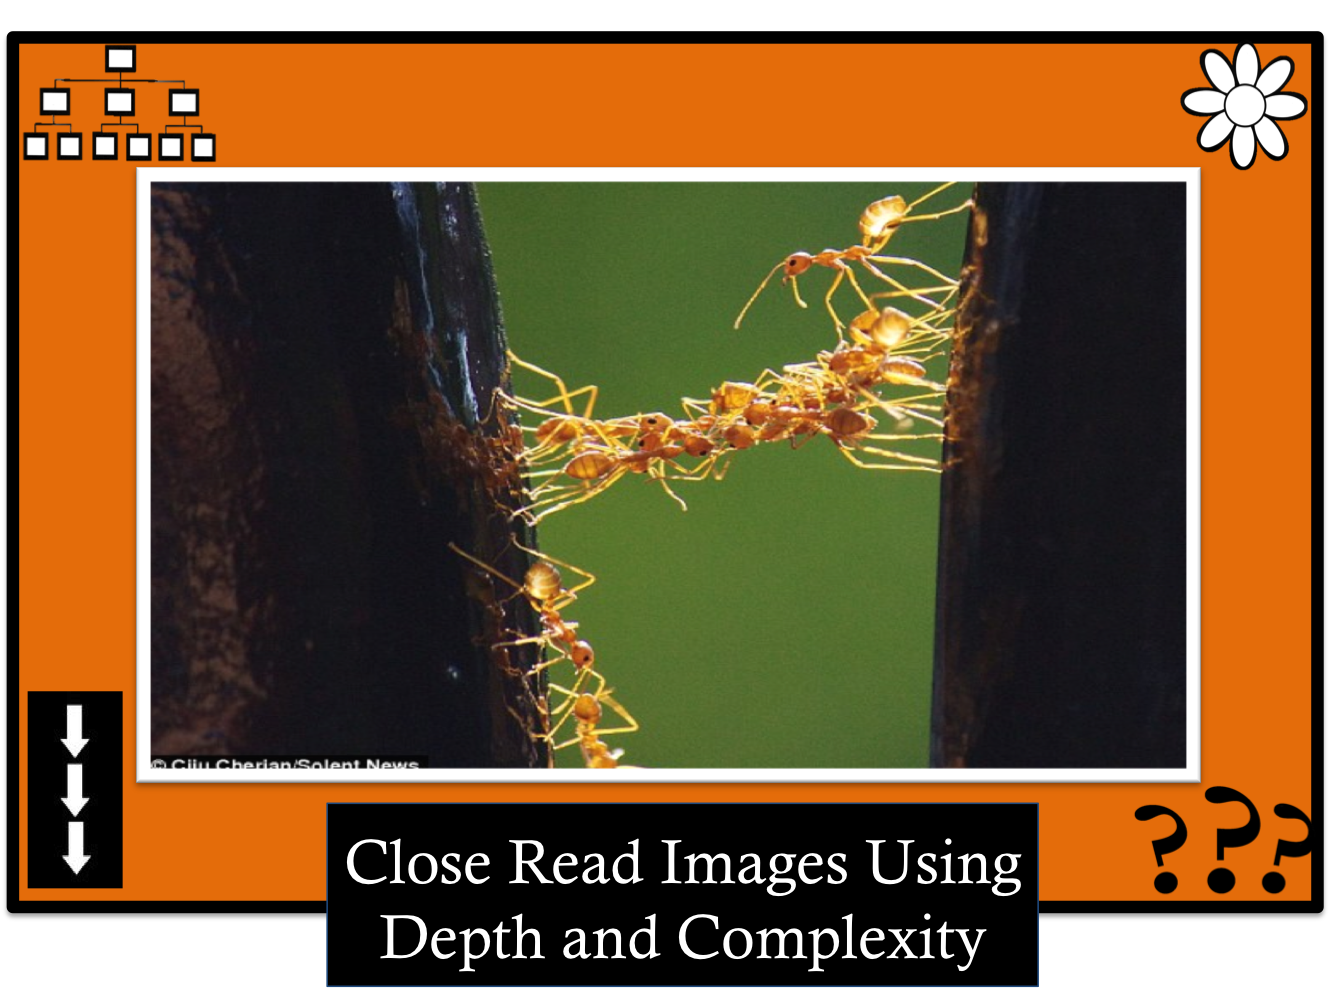 Envision Gifted. Close read image. Ants working together. Close read a image use Depth and complexity.